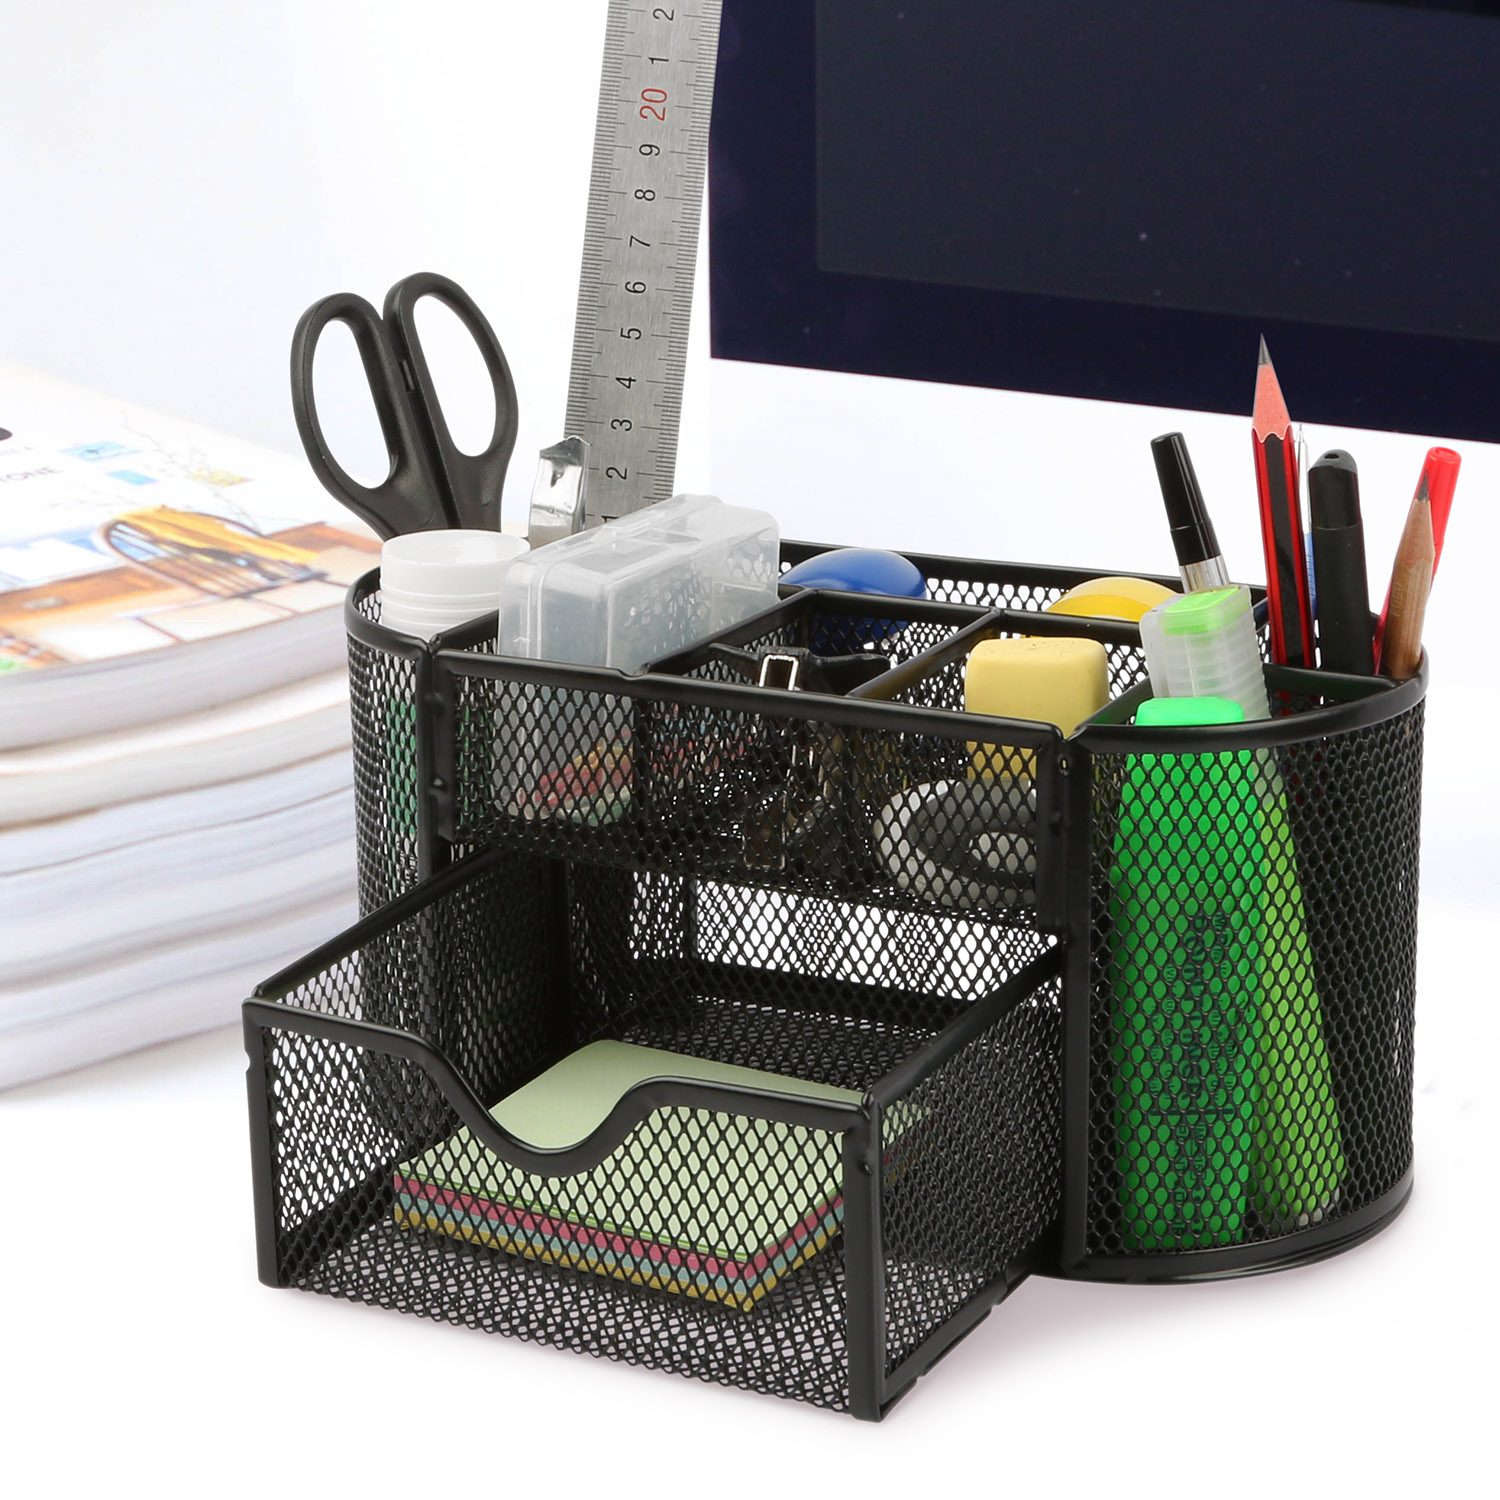 Office School Home/Teacher Supplies Mesh Desk Pen Organizer. Comes W/ 4 Pencil Cups For Highlighters/Pens/Sharpie, 4 Square Compartments For Paper Clips/Sticky Notes & 1 Supply Drawer (Black)